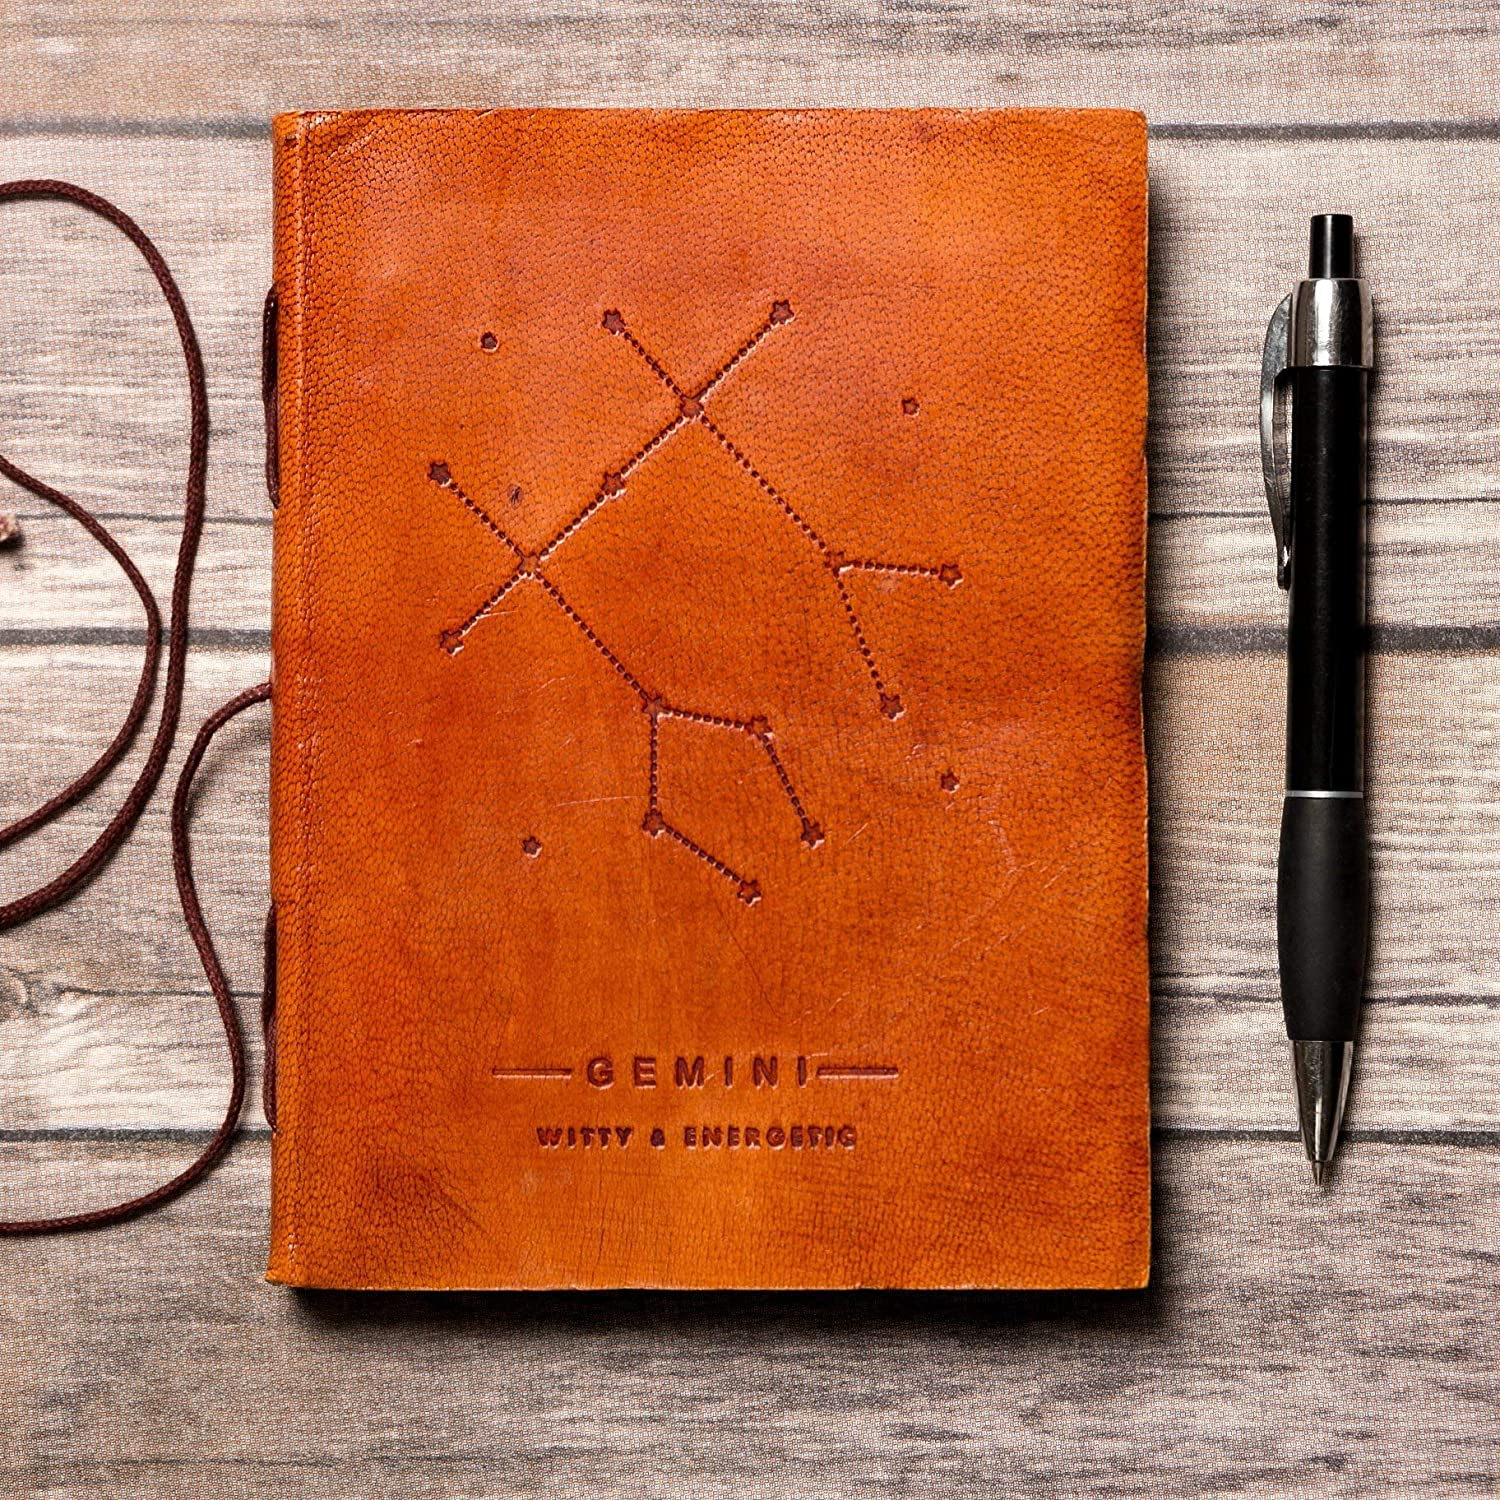 Gemini Leather Journal//Zodiac Handmade Journal//Astrology Journal//Horoscope Journal//Gifts for Him//Travel Journal//Sketchbook//Embossed Genuine Leather Journal//Your Personal Bound Notebook